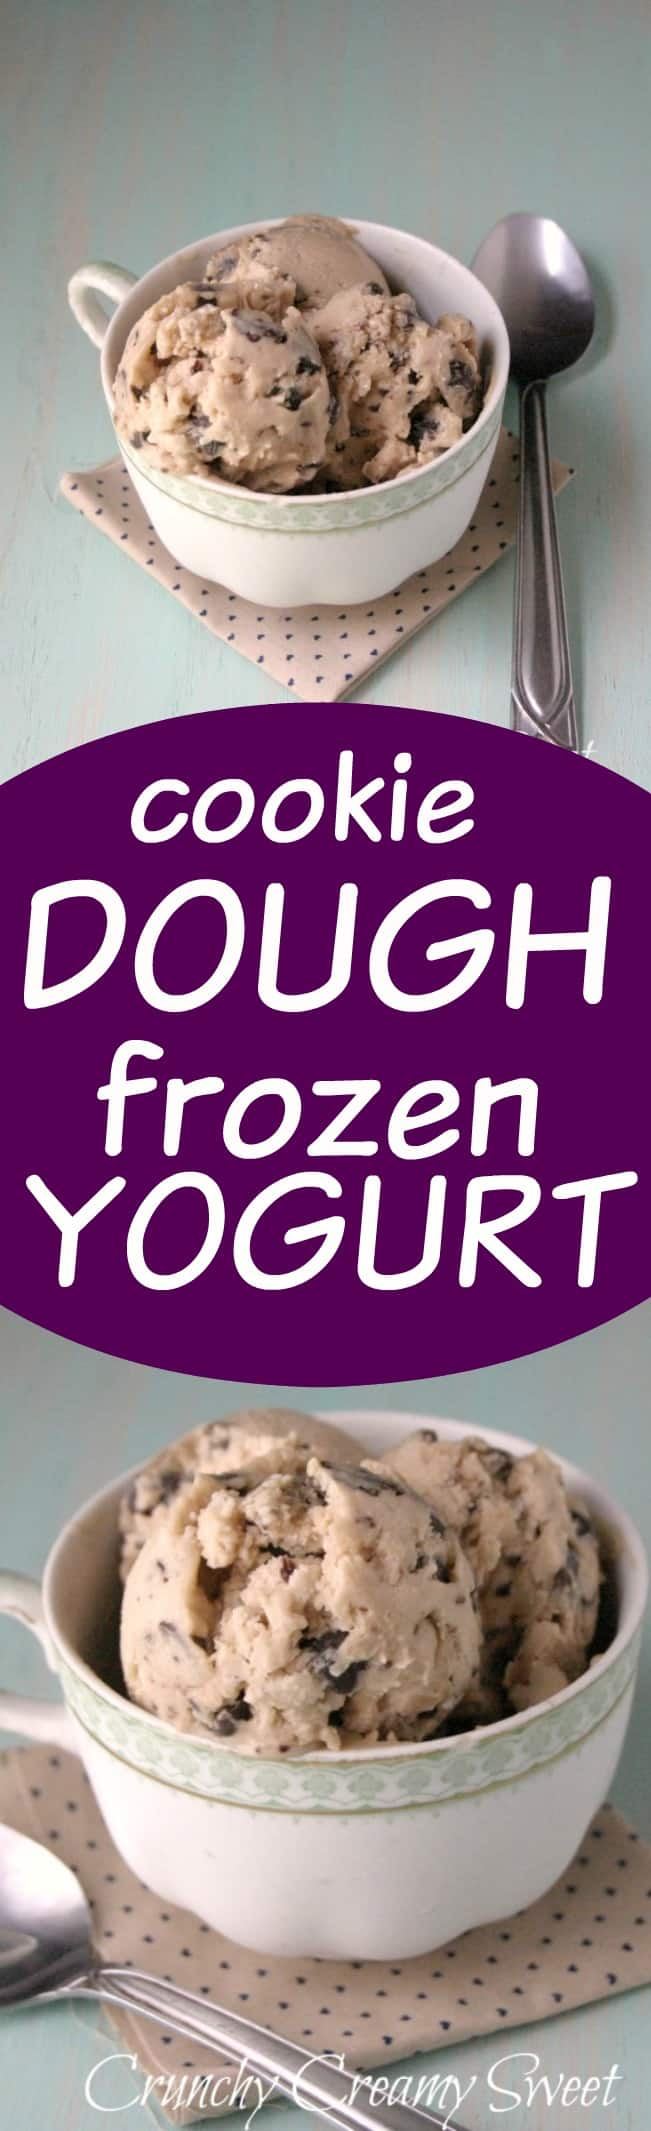 cookie dough frozen yogurt long CCC Monday: Chocolate Chunk Cookie Dough Frozen Yogurt